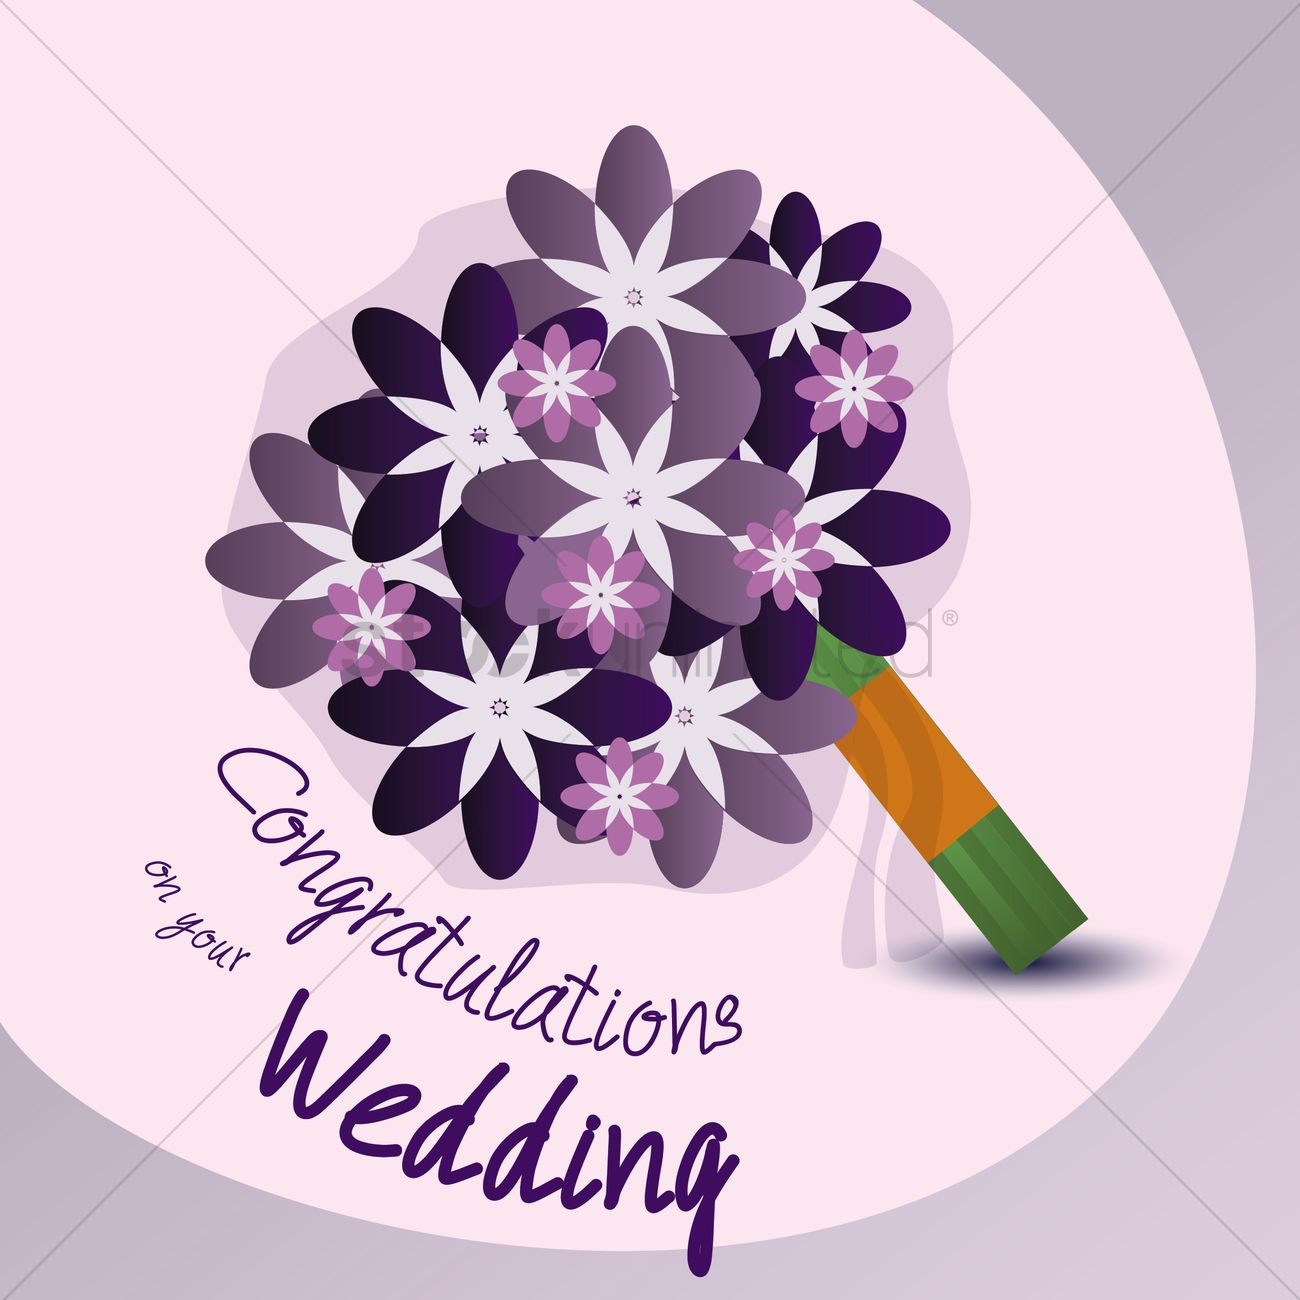 Congrats On Your Wedding: Congratulations On Your Wedding Vector Image